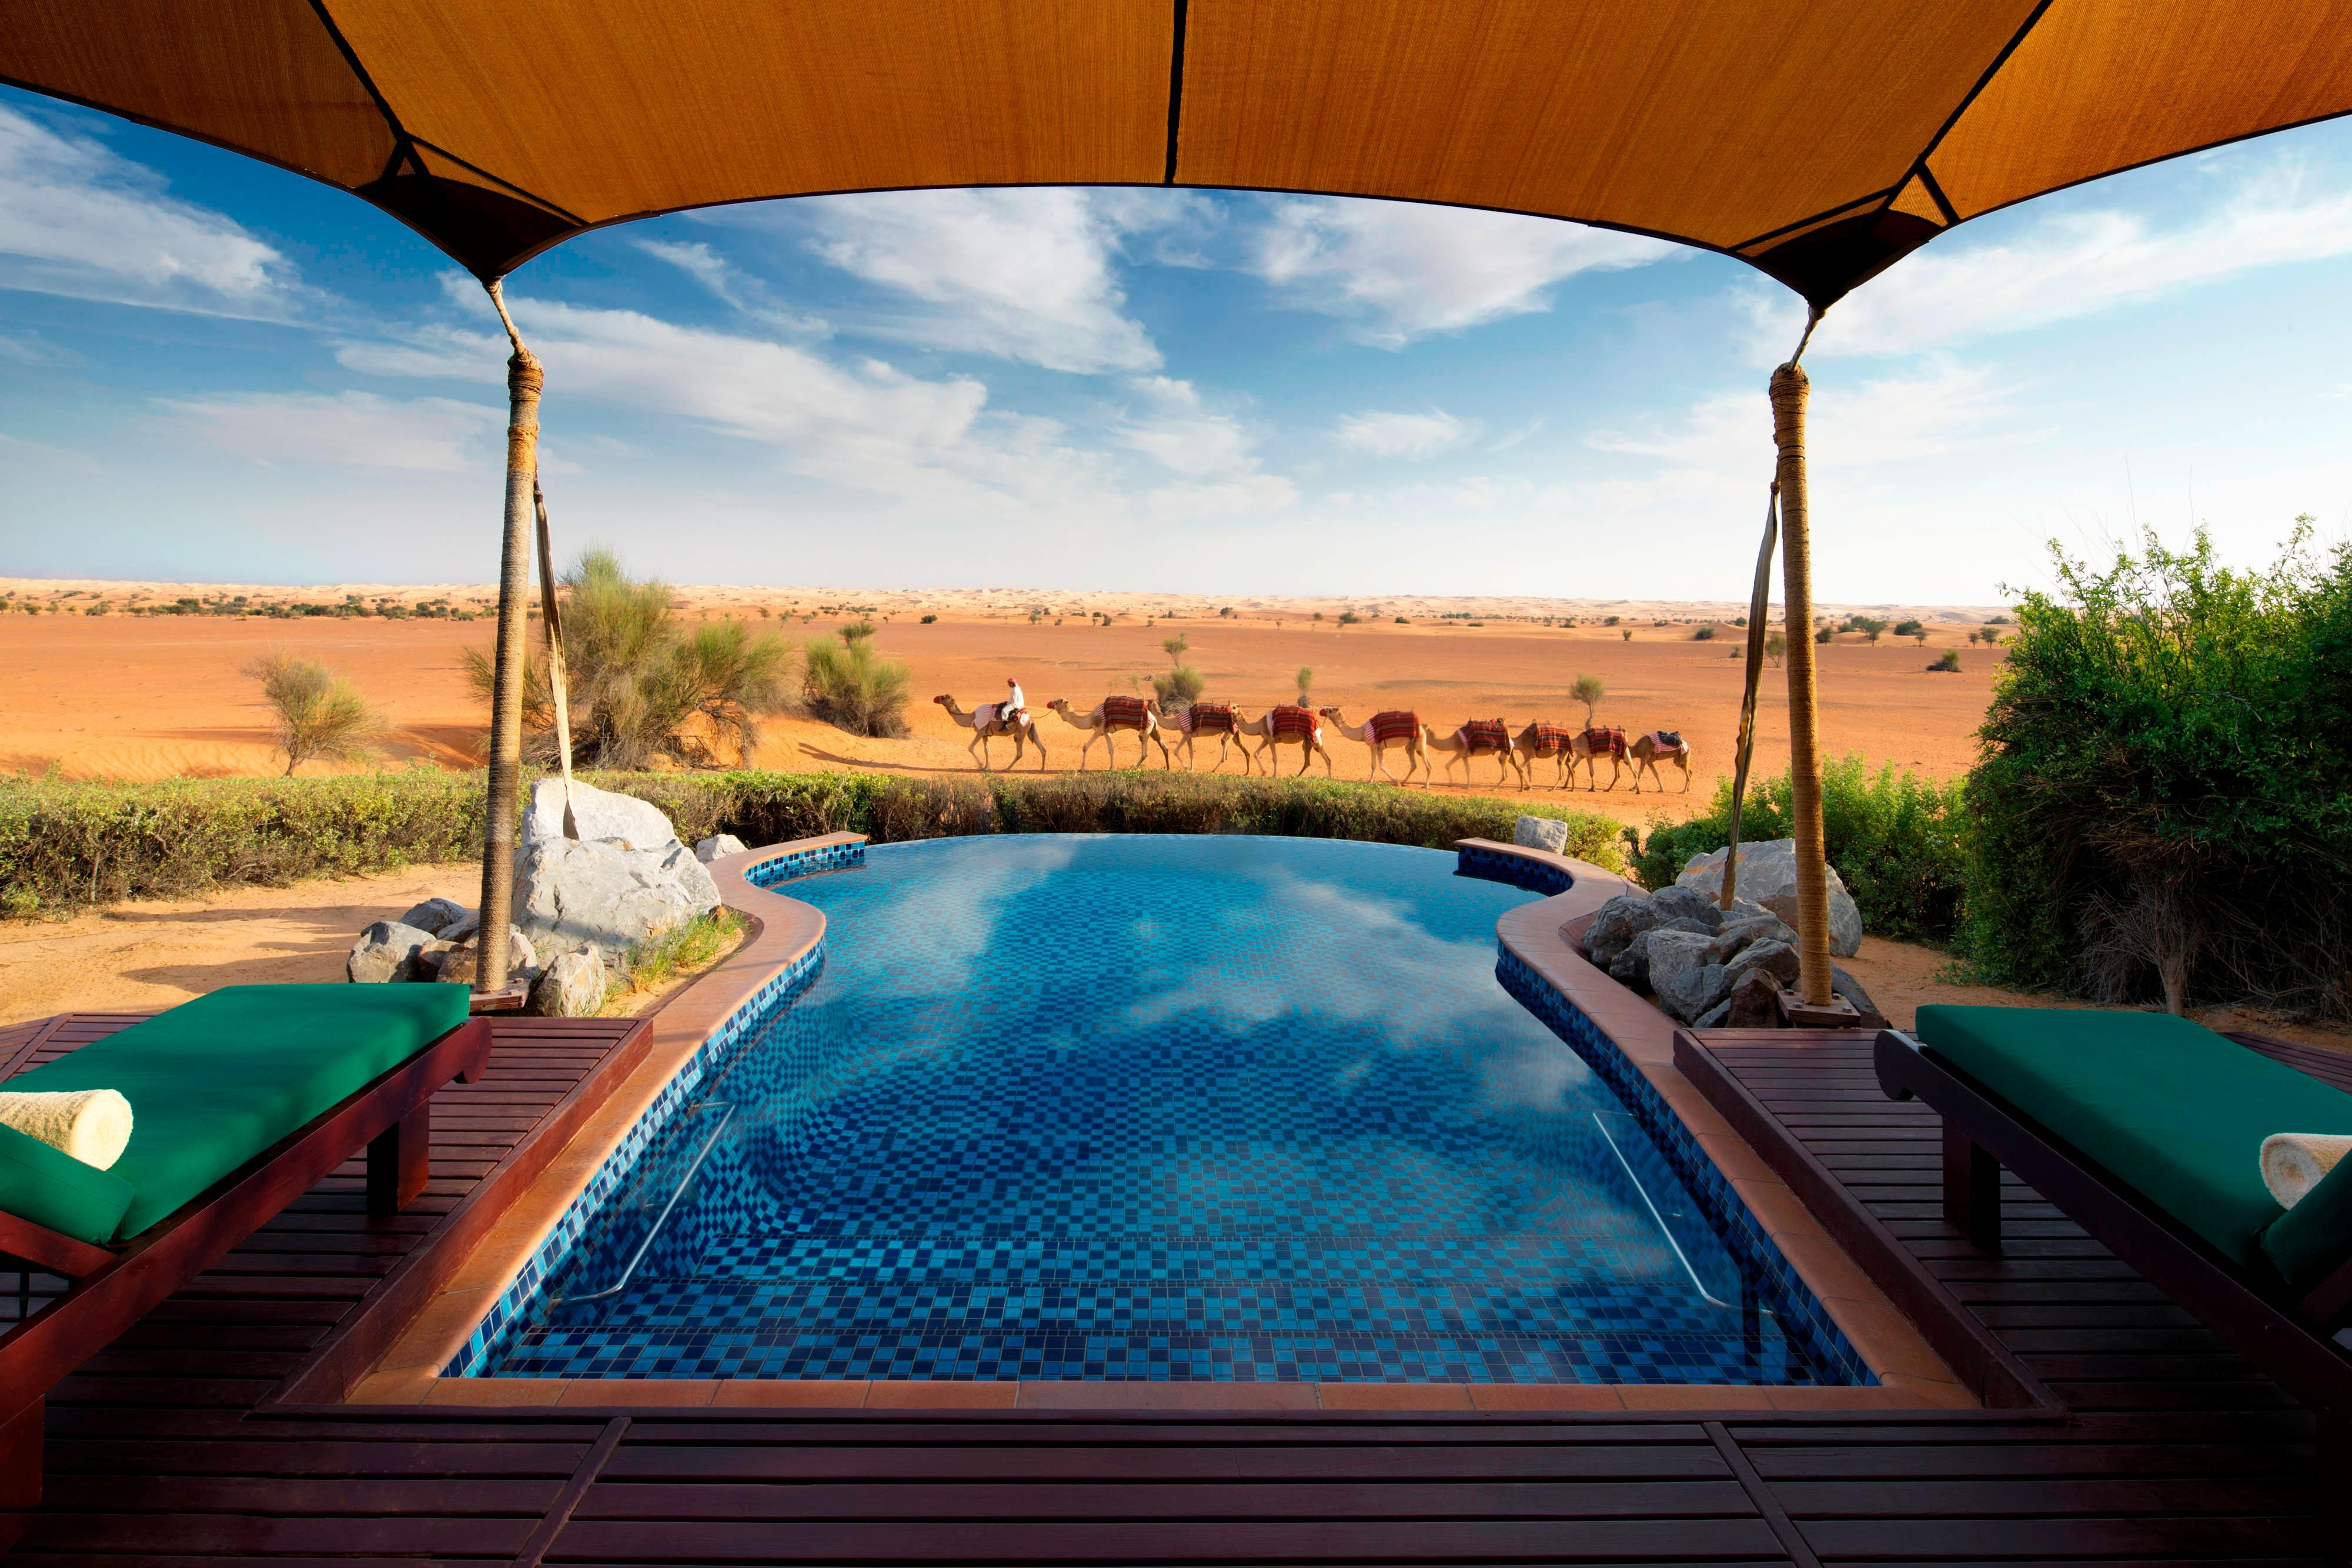 Bedouin Suite Pool